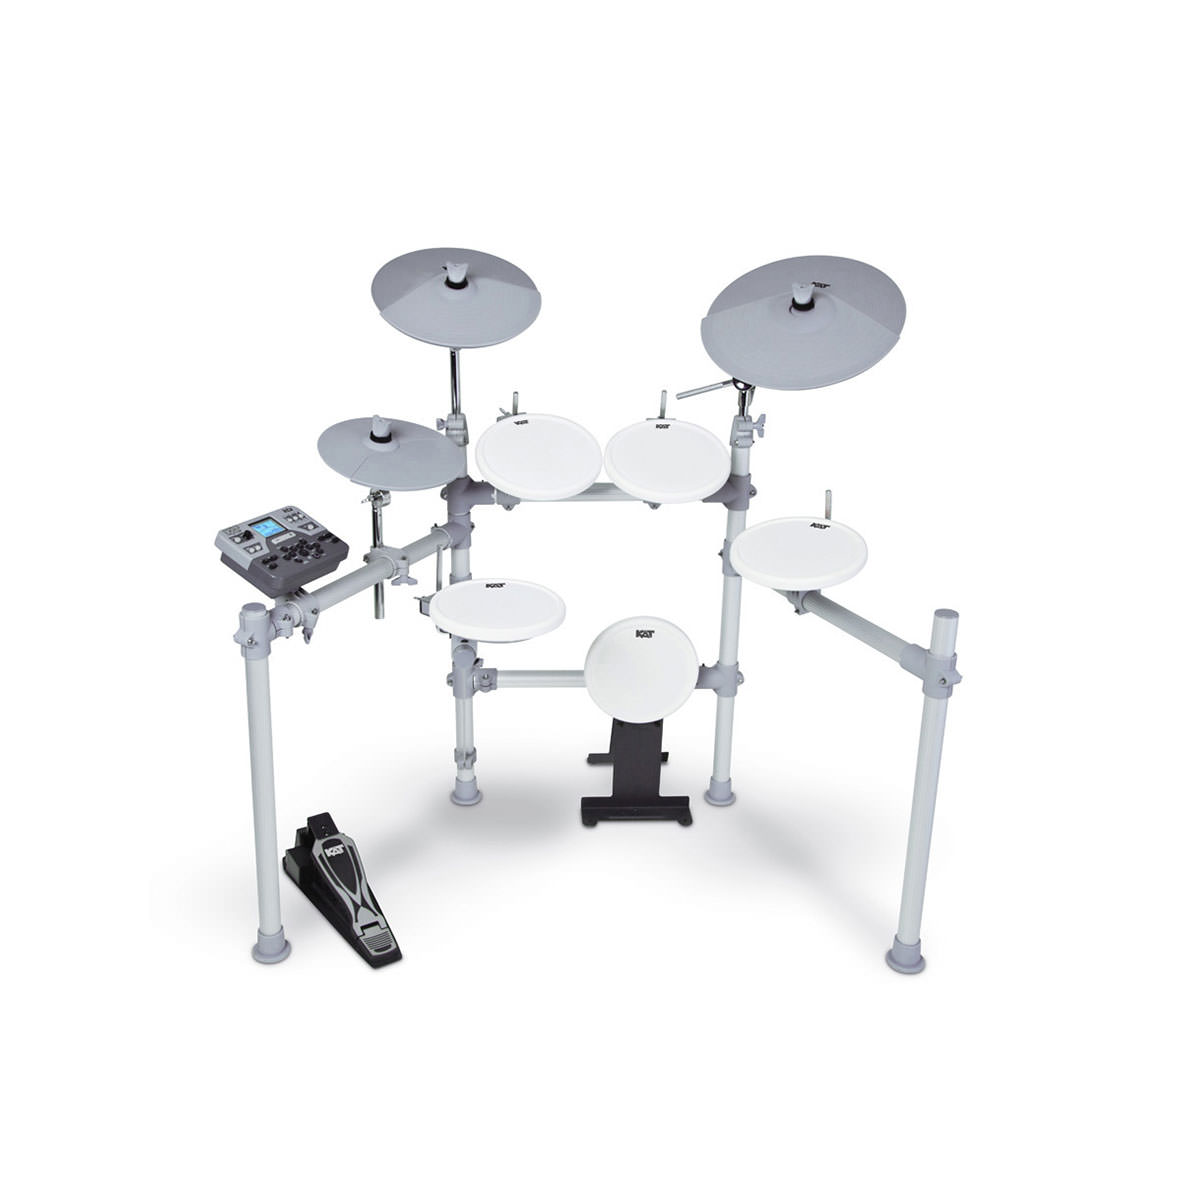 KAT KT4 Electronic Drum Kit (Excluding Pedal & Throne)